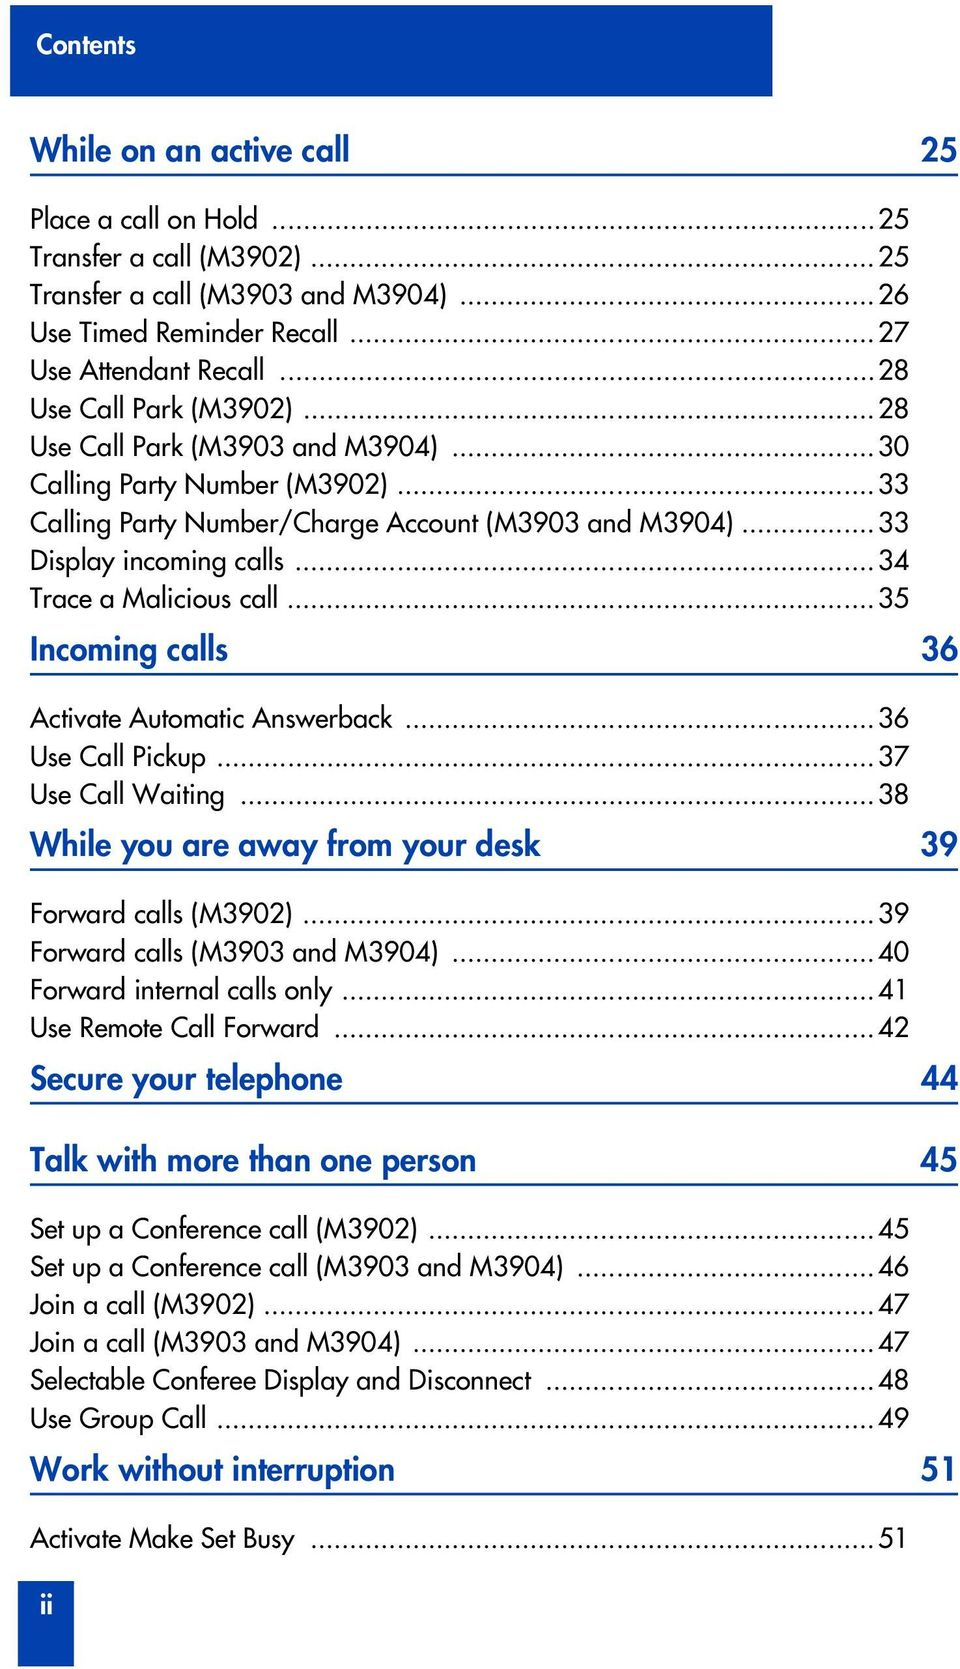 ..34 Trace a Malicious call...35 Incoming calls 36 Activate Automatic Answerback...36 Use Call Pickup...37 Use Call Waiting...38 While you are away from your desk 39 Fward calls (M3902).